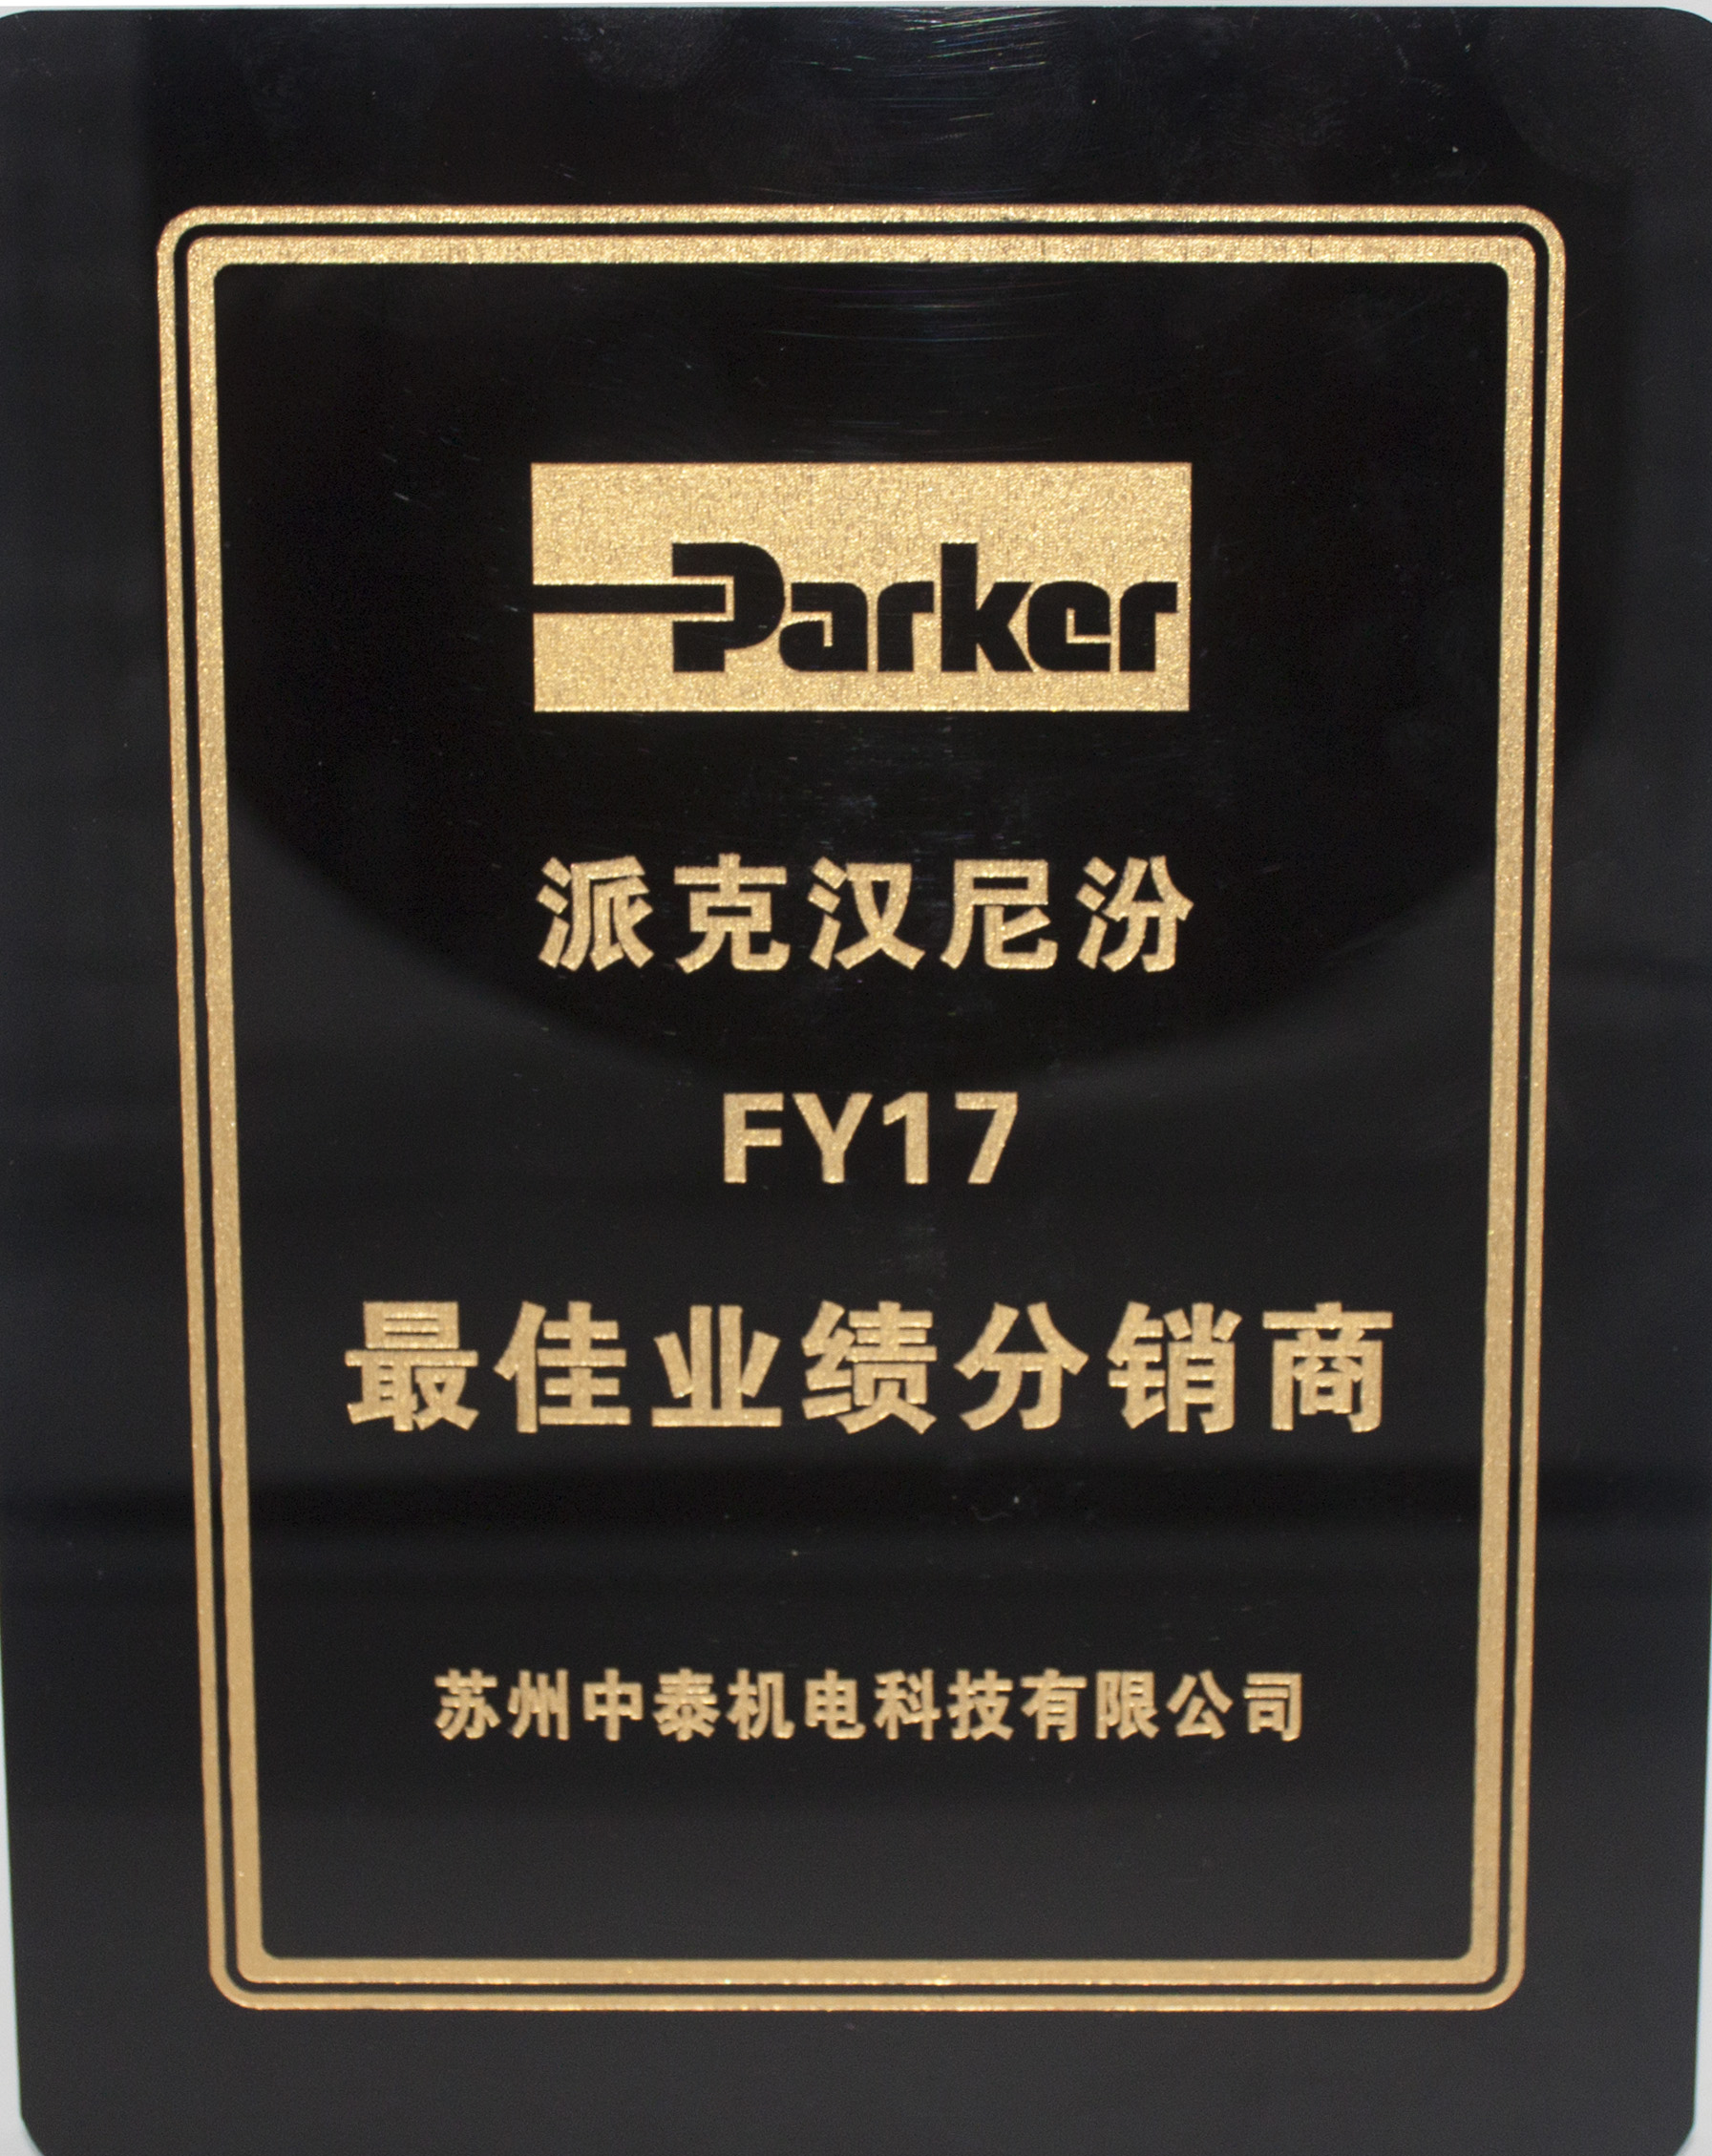 Parker annual best distributor